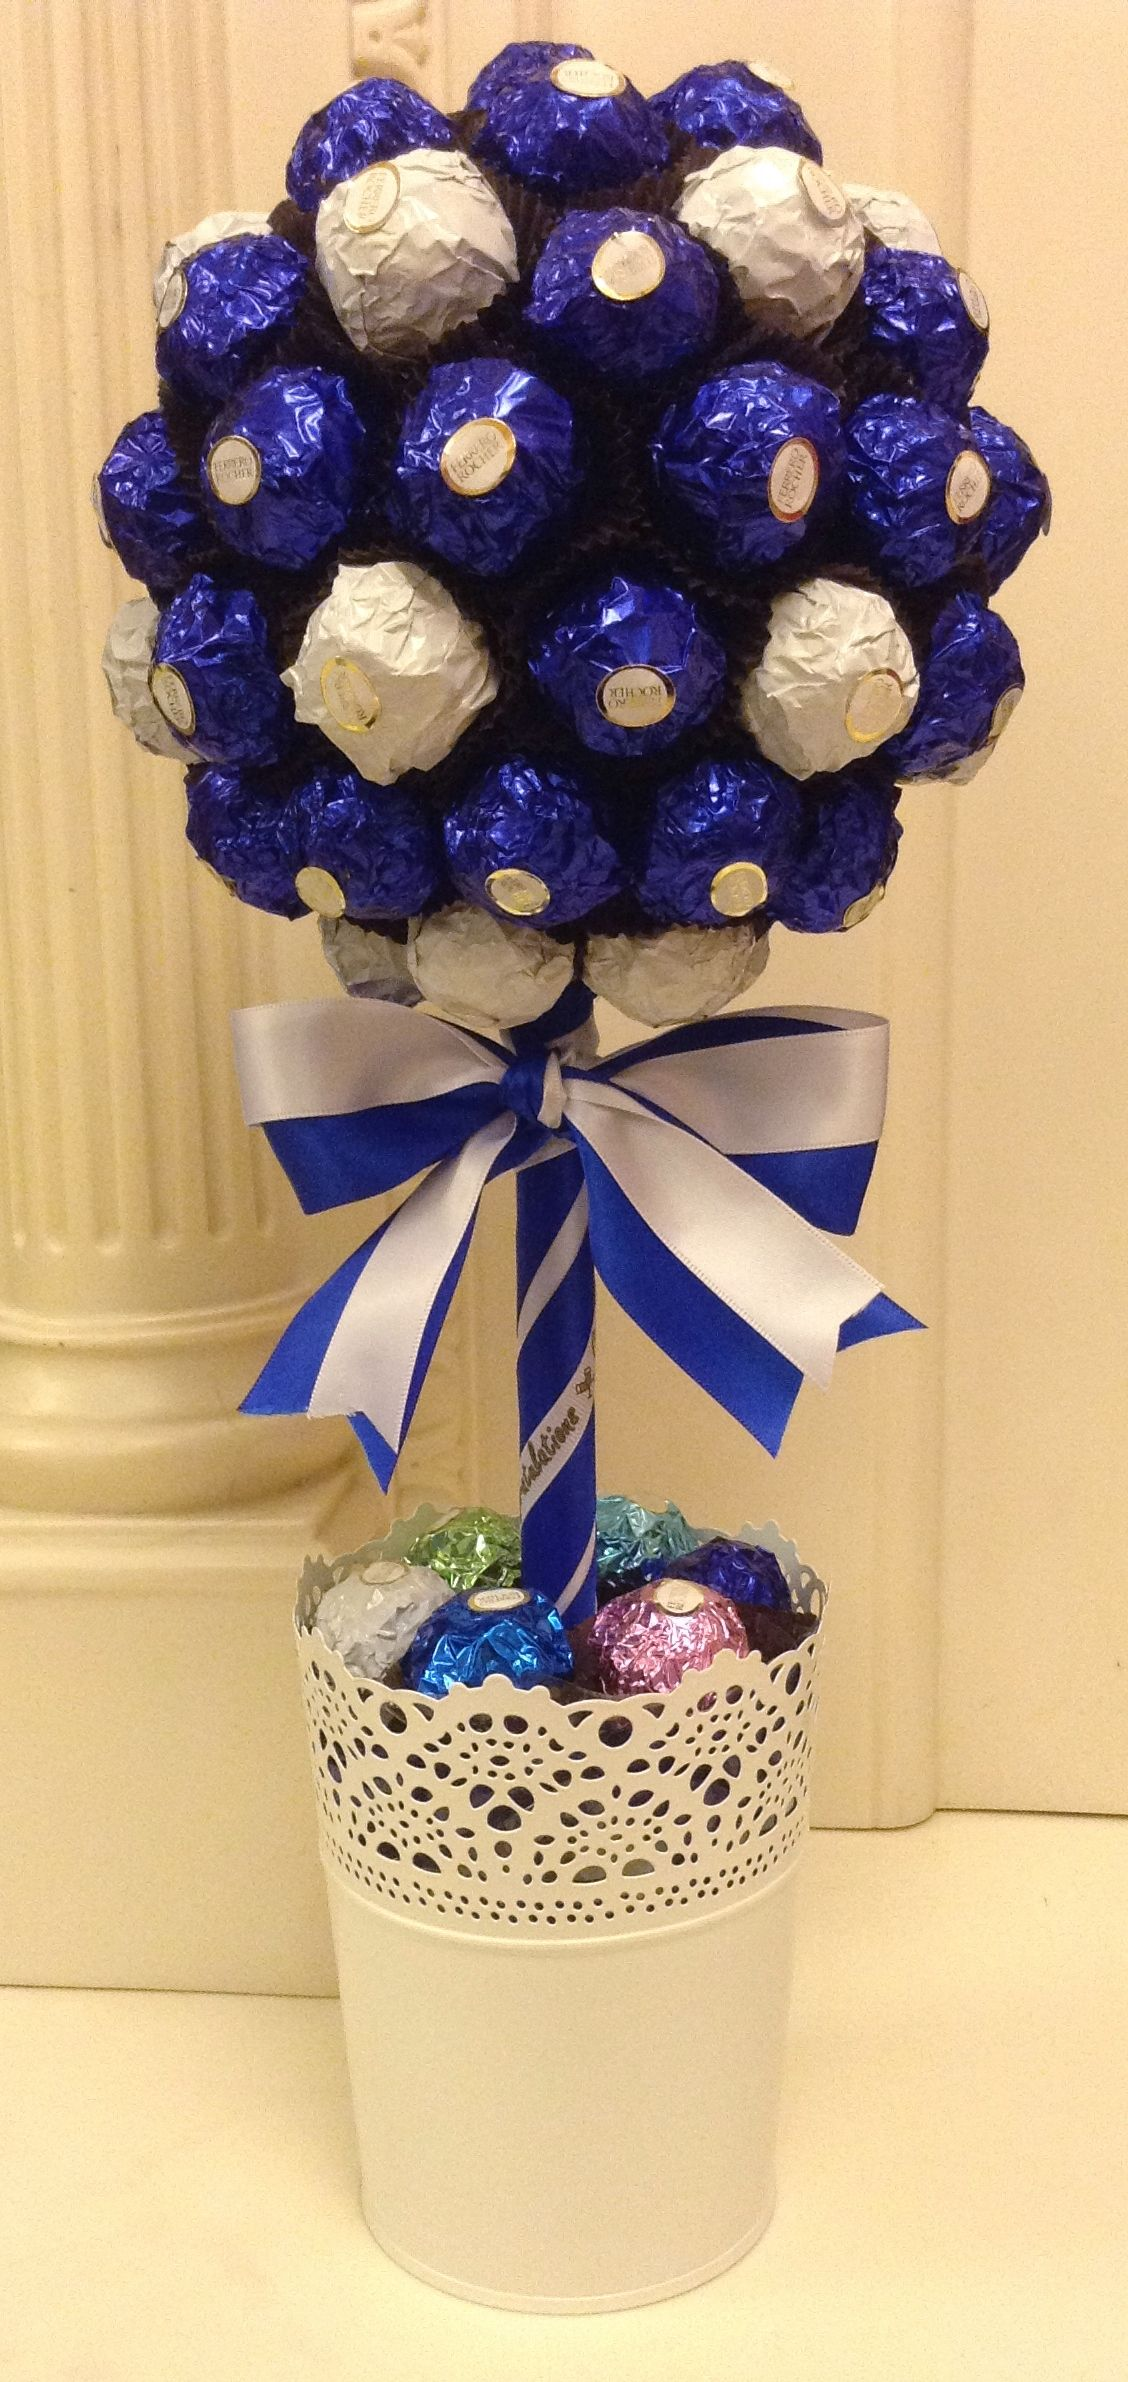 Blue and white ferrero rocher candy tree other colours available blue and white ferrero rocher candy tree other colours available candytreescambridge izmirmasajfo